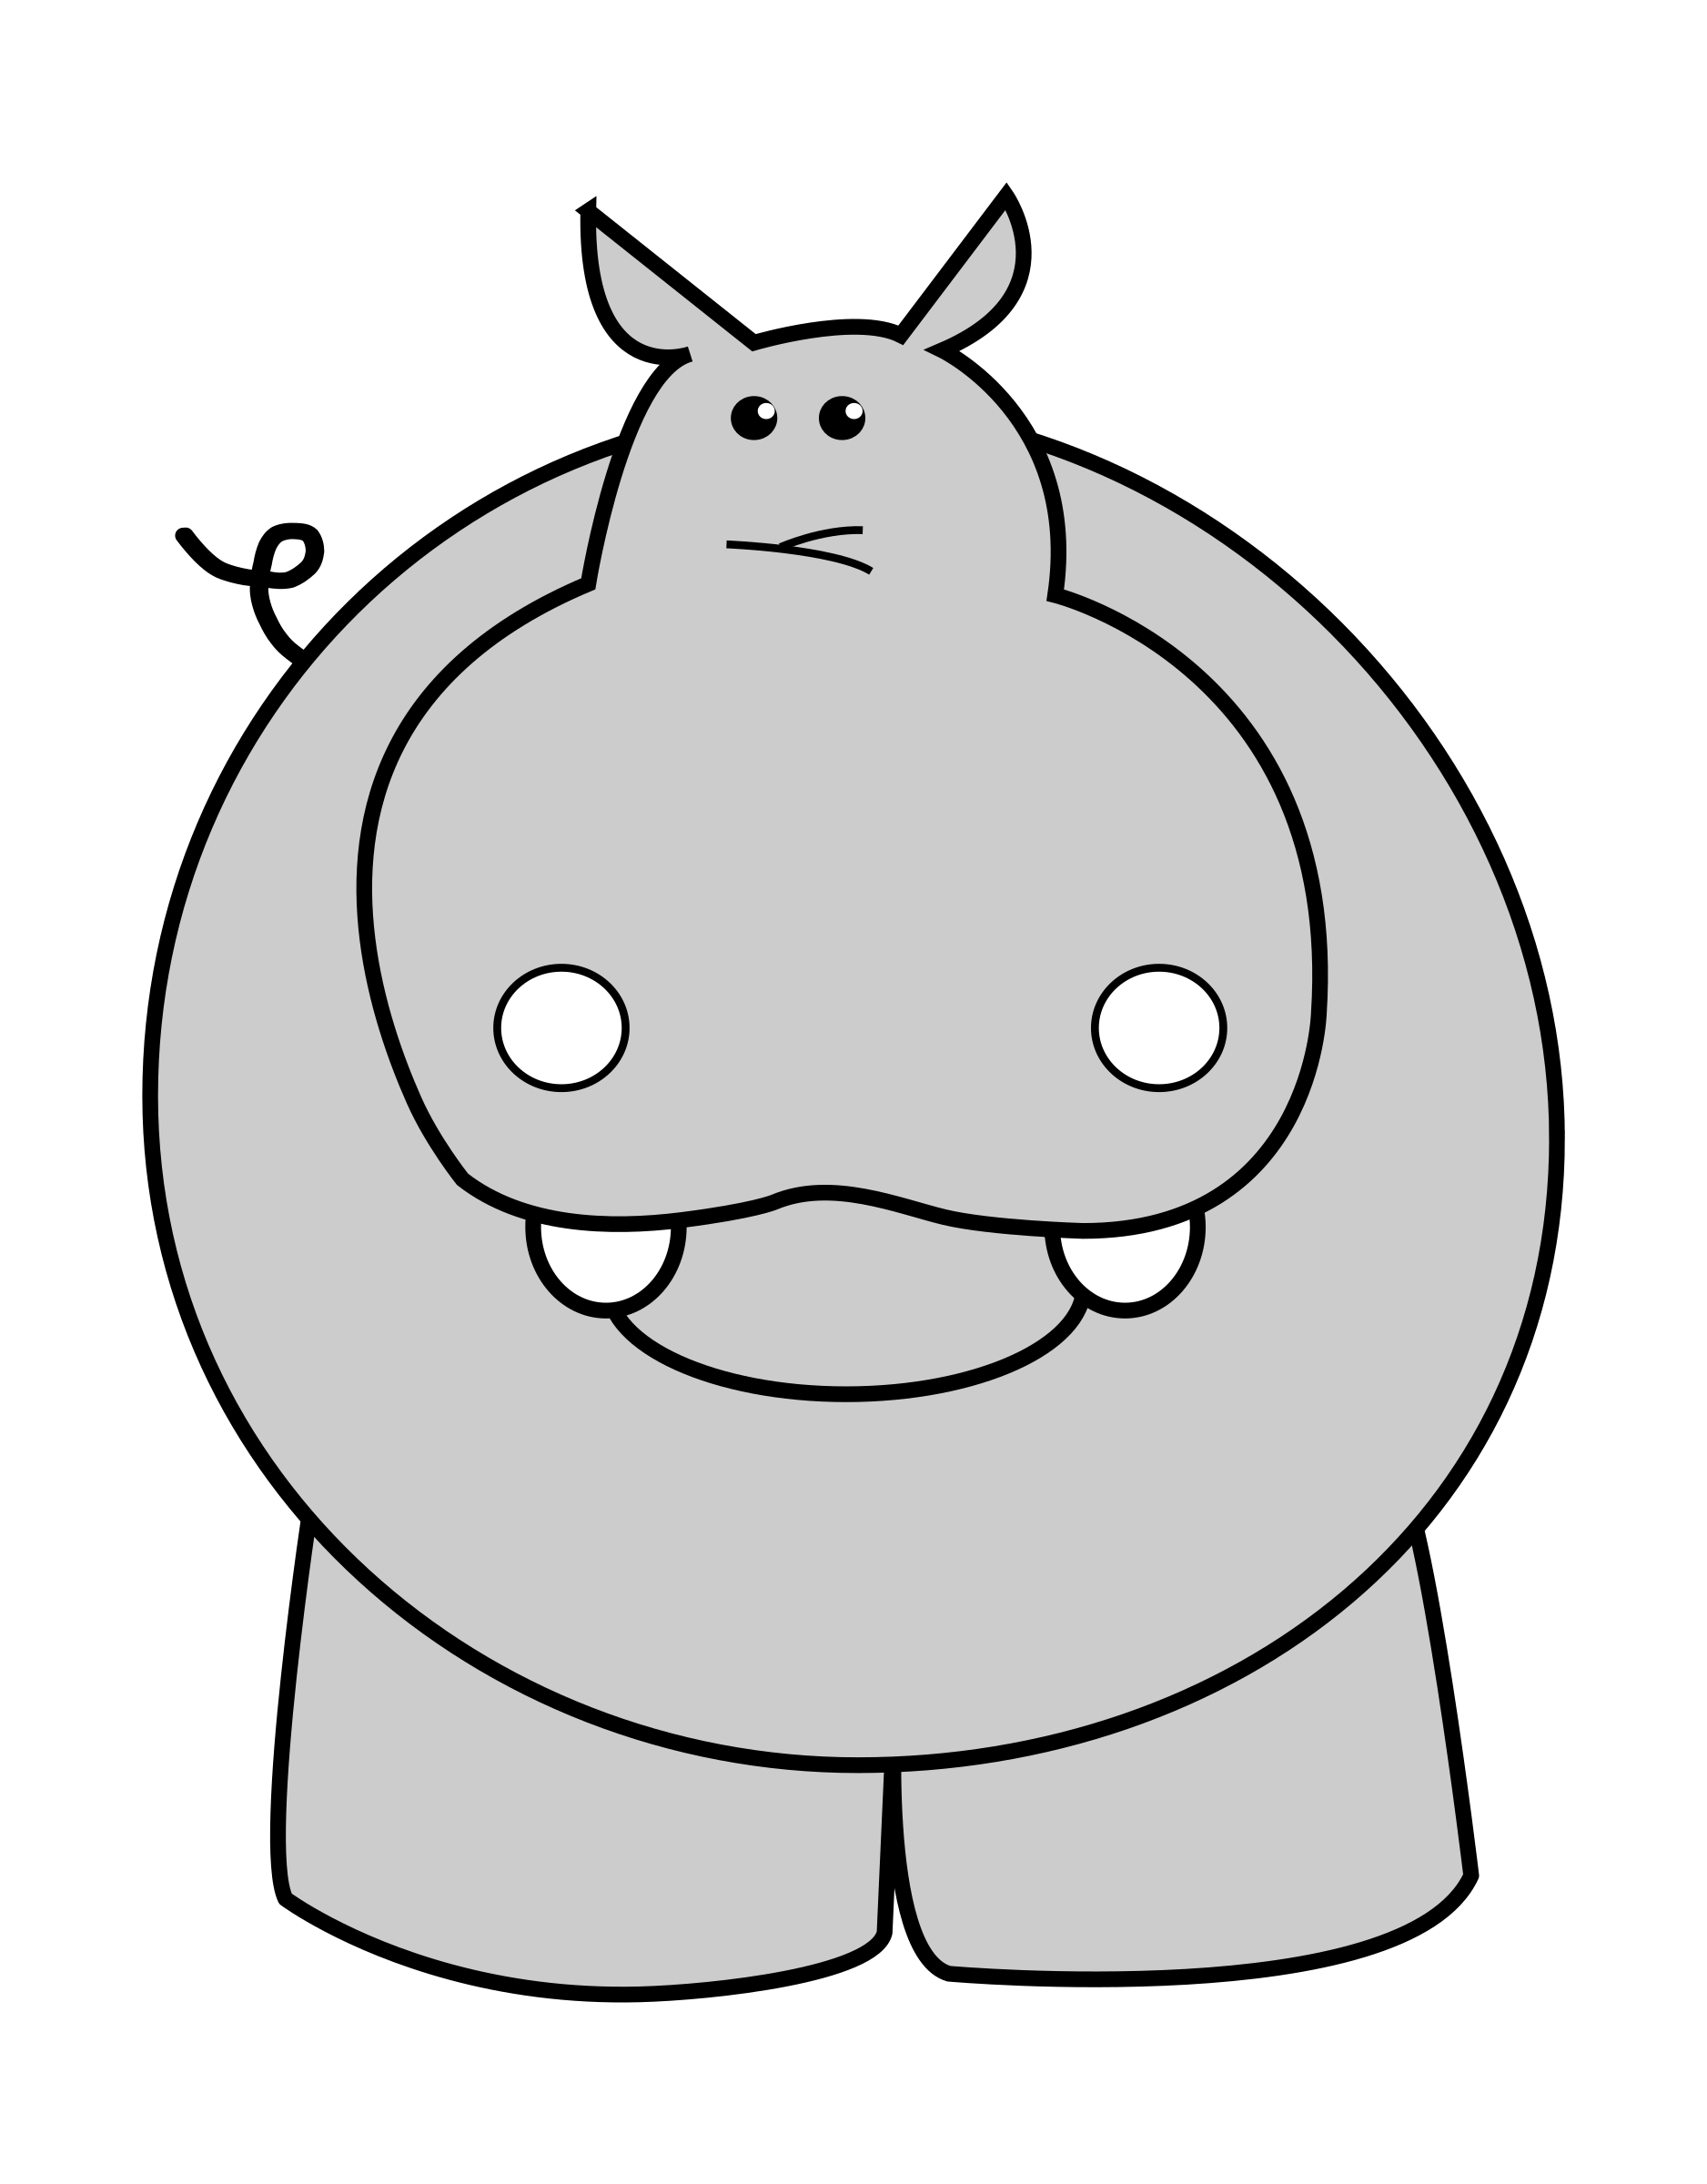 Big image png. Clipart hippo cool